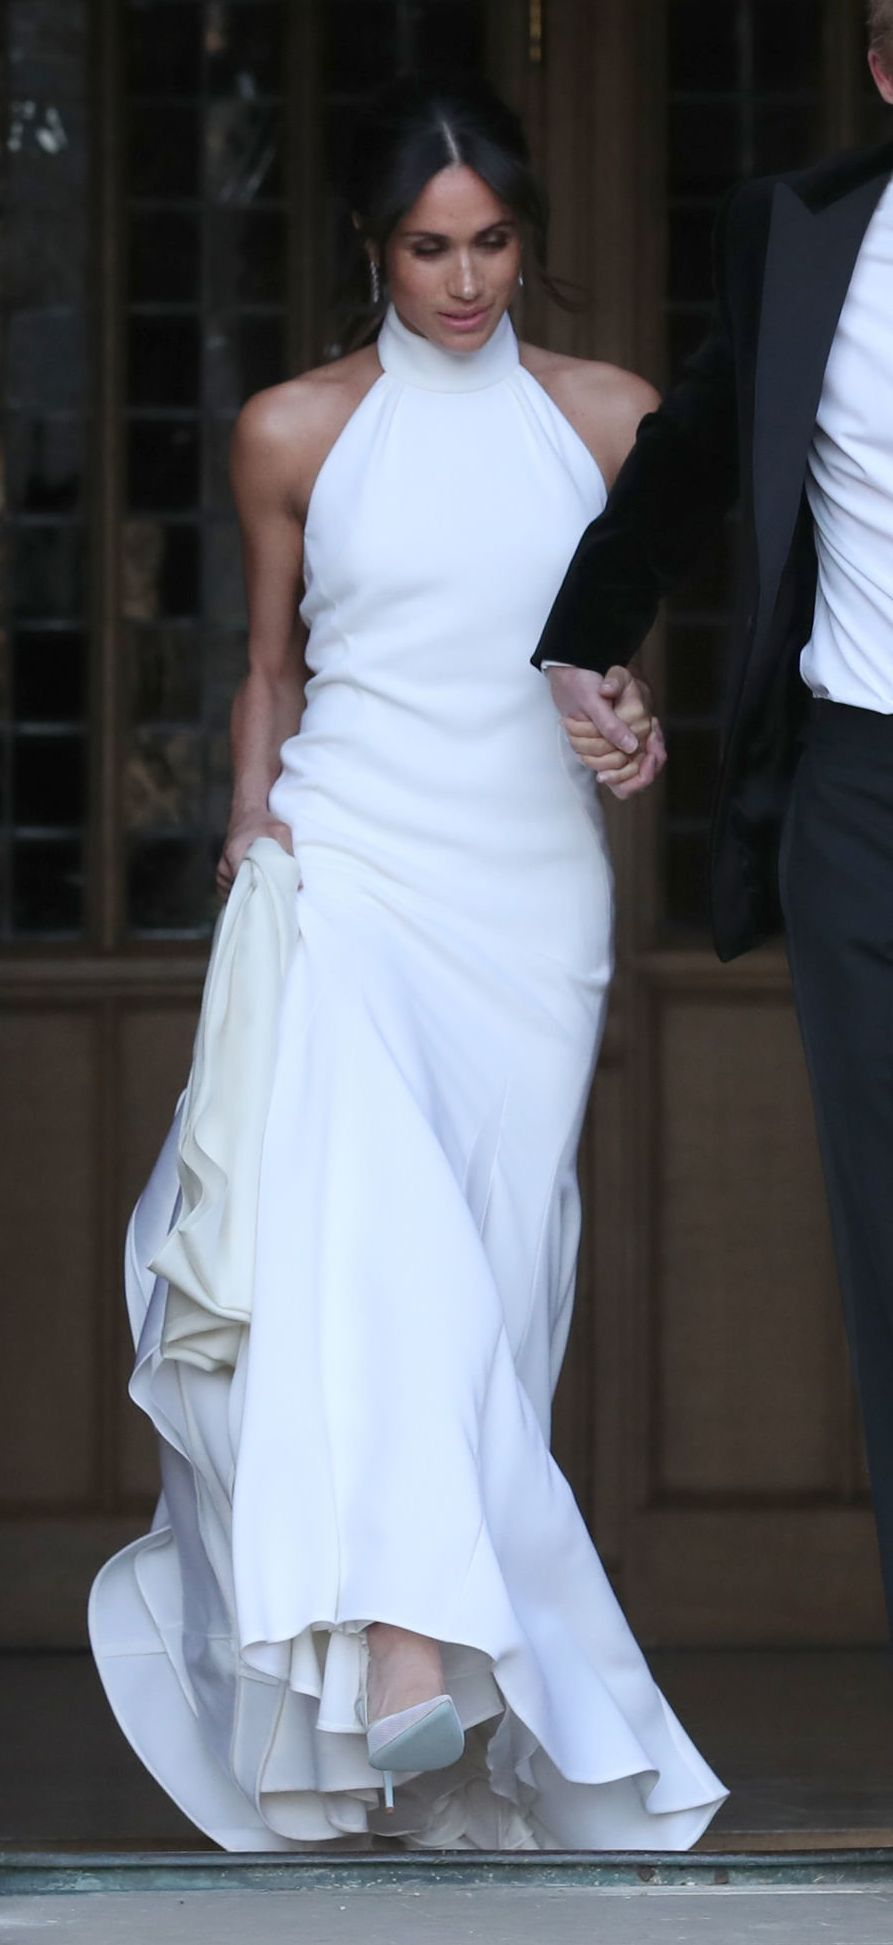 Royal Wedding: Meghan Markle Reveals Stunning Evening Dress